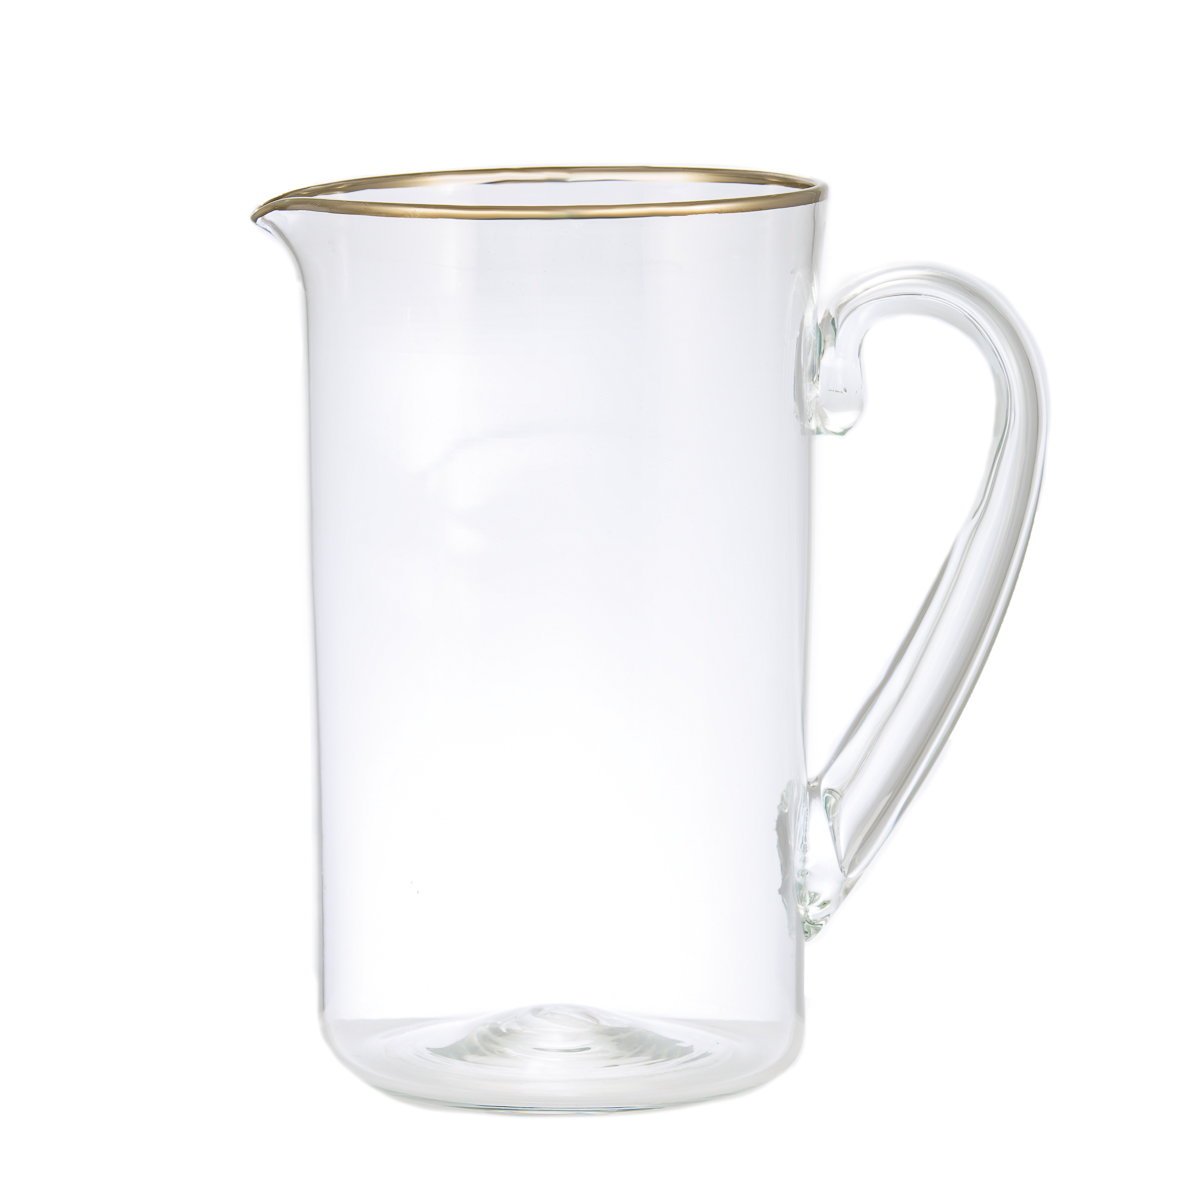 viola_clear_jug_glass_luxury_murano